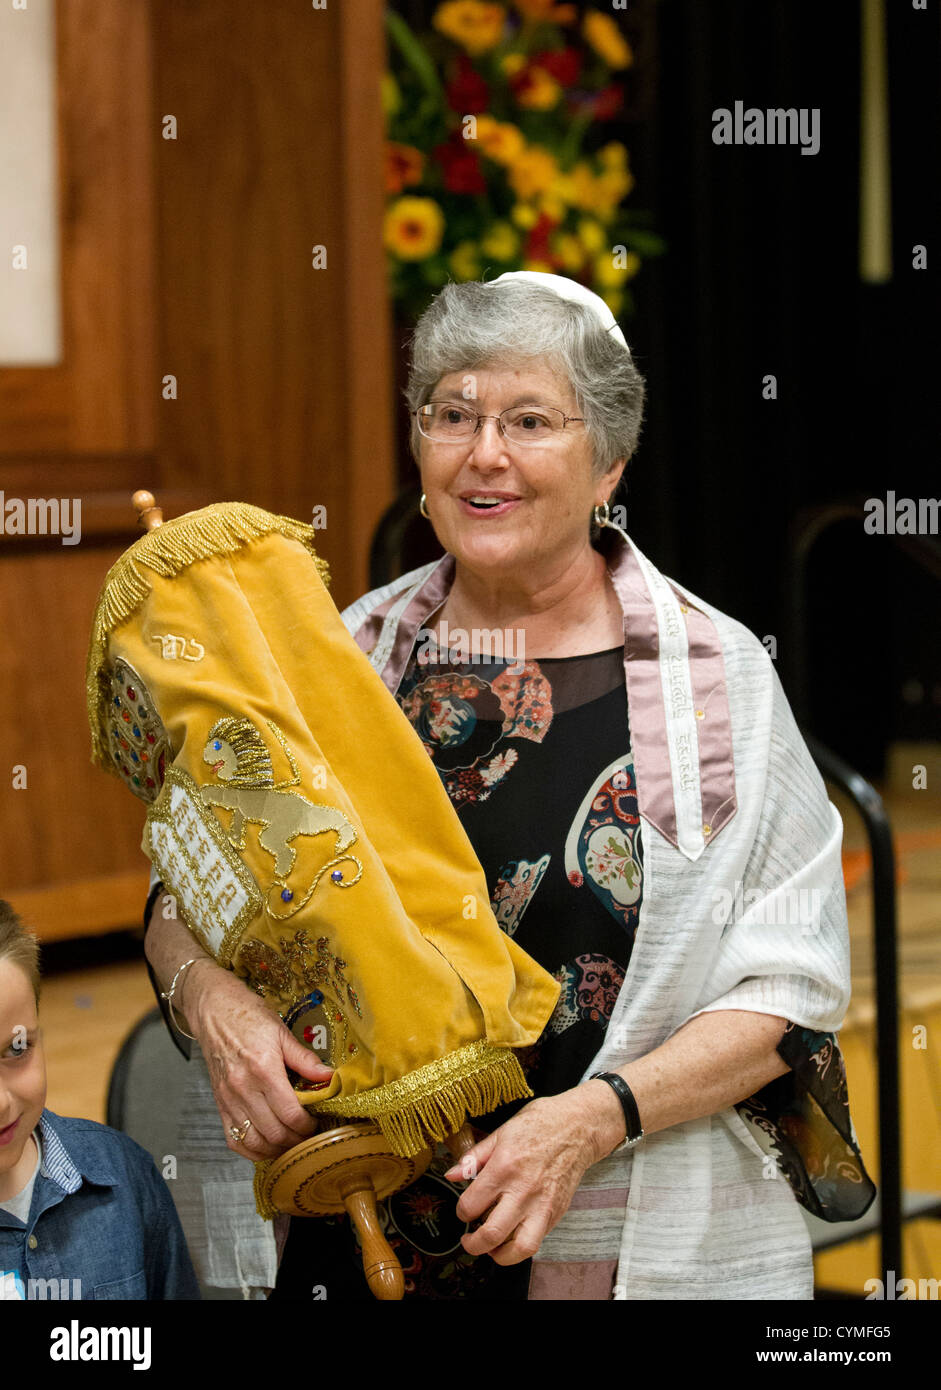 Jewish woman, 67, holds Torah during her Bat Mitzvah ceremony during Sabbath service at her synagogue - Stock Image